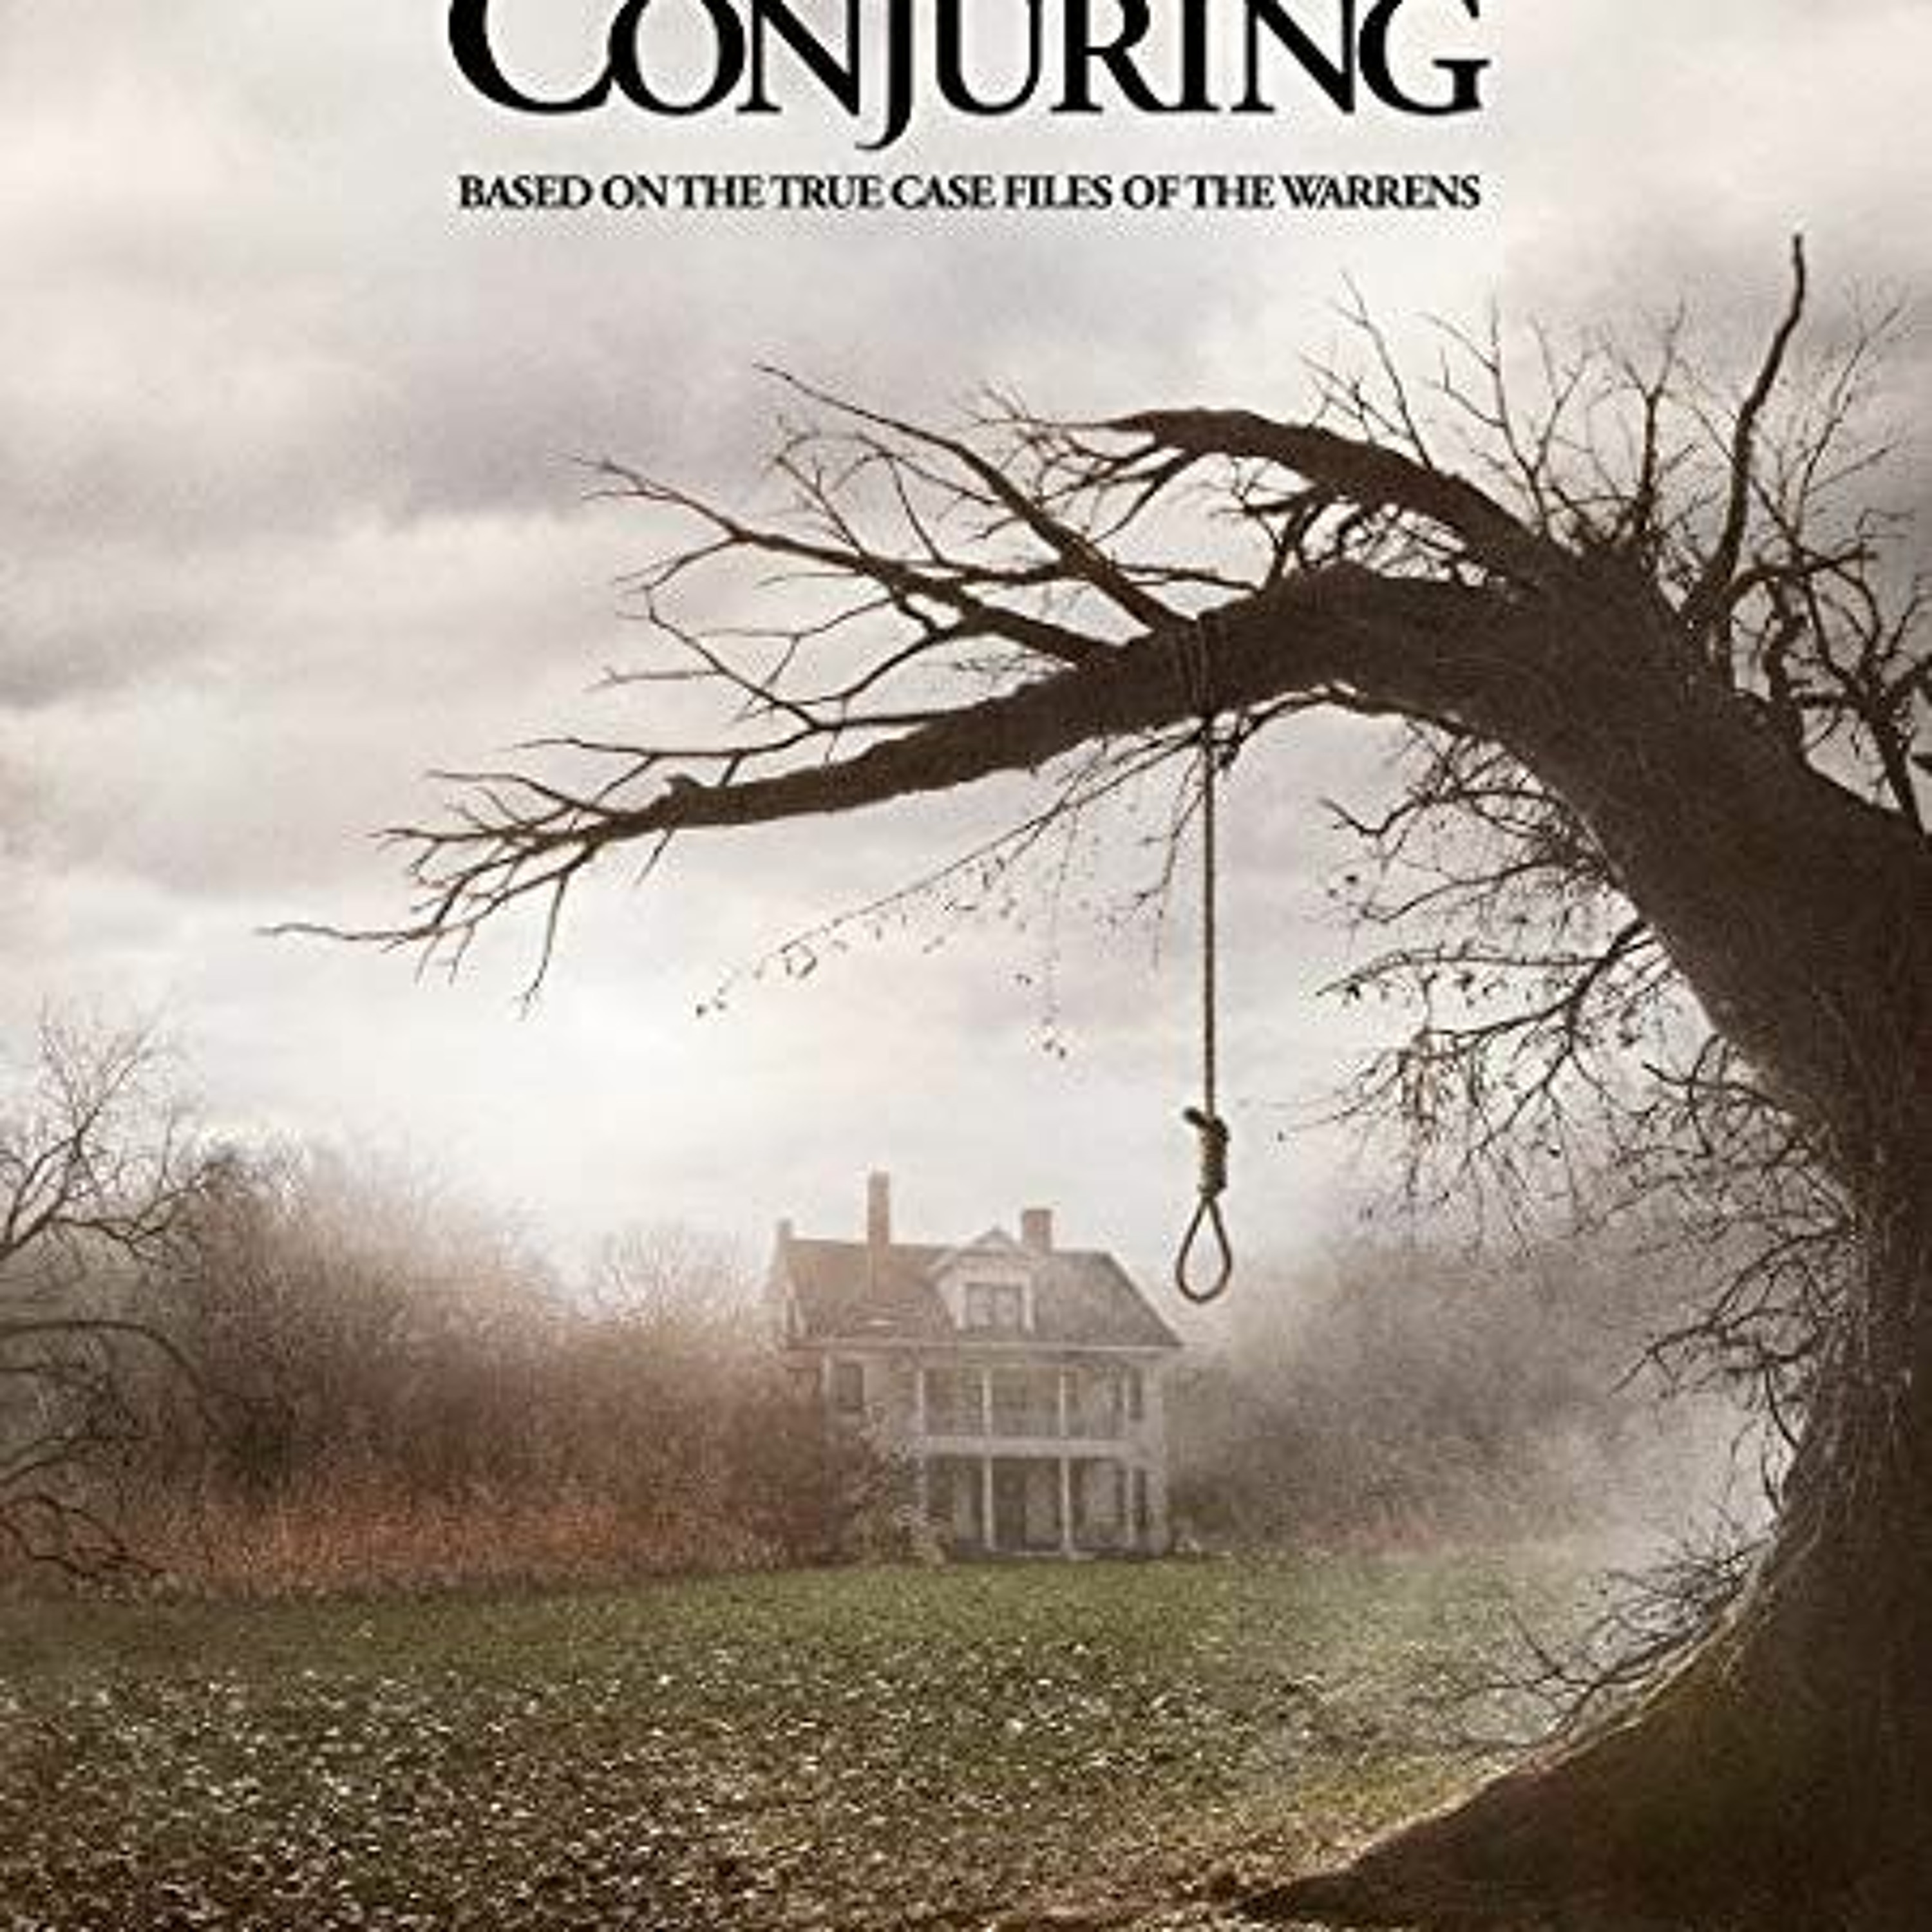 89 - The Conjuring